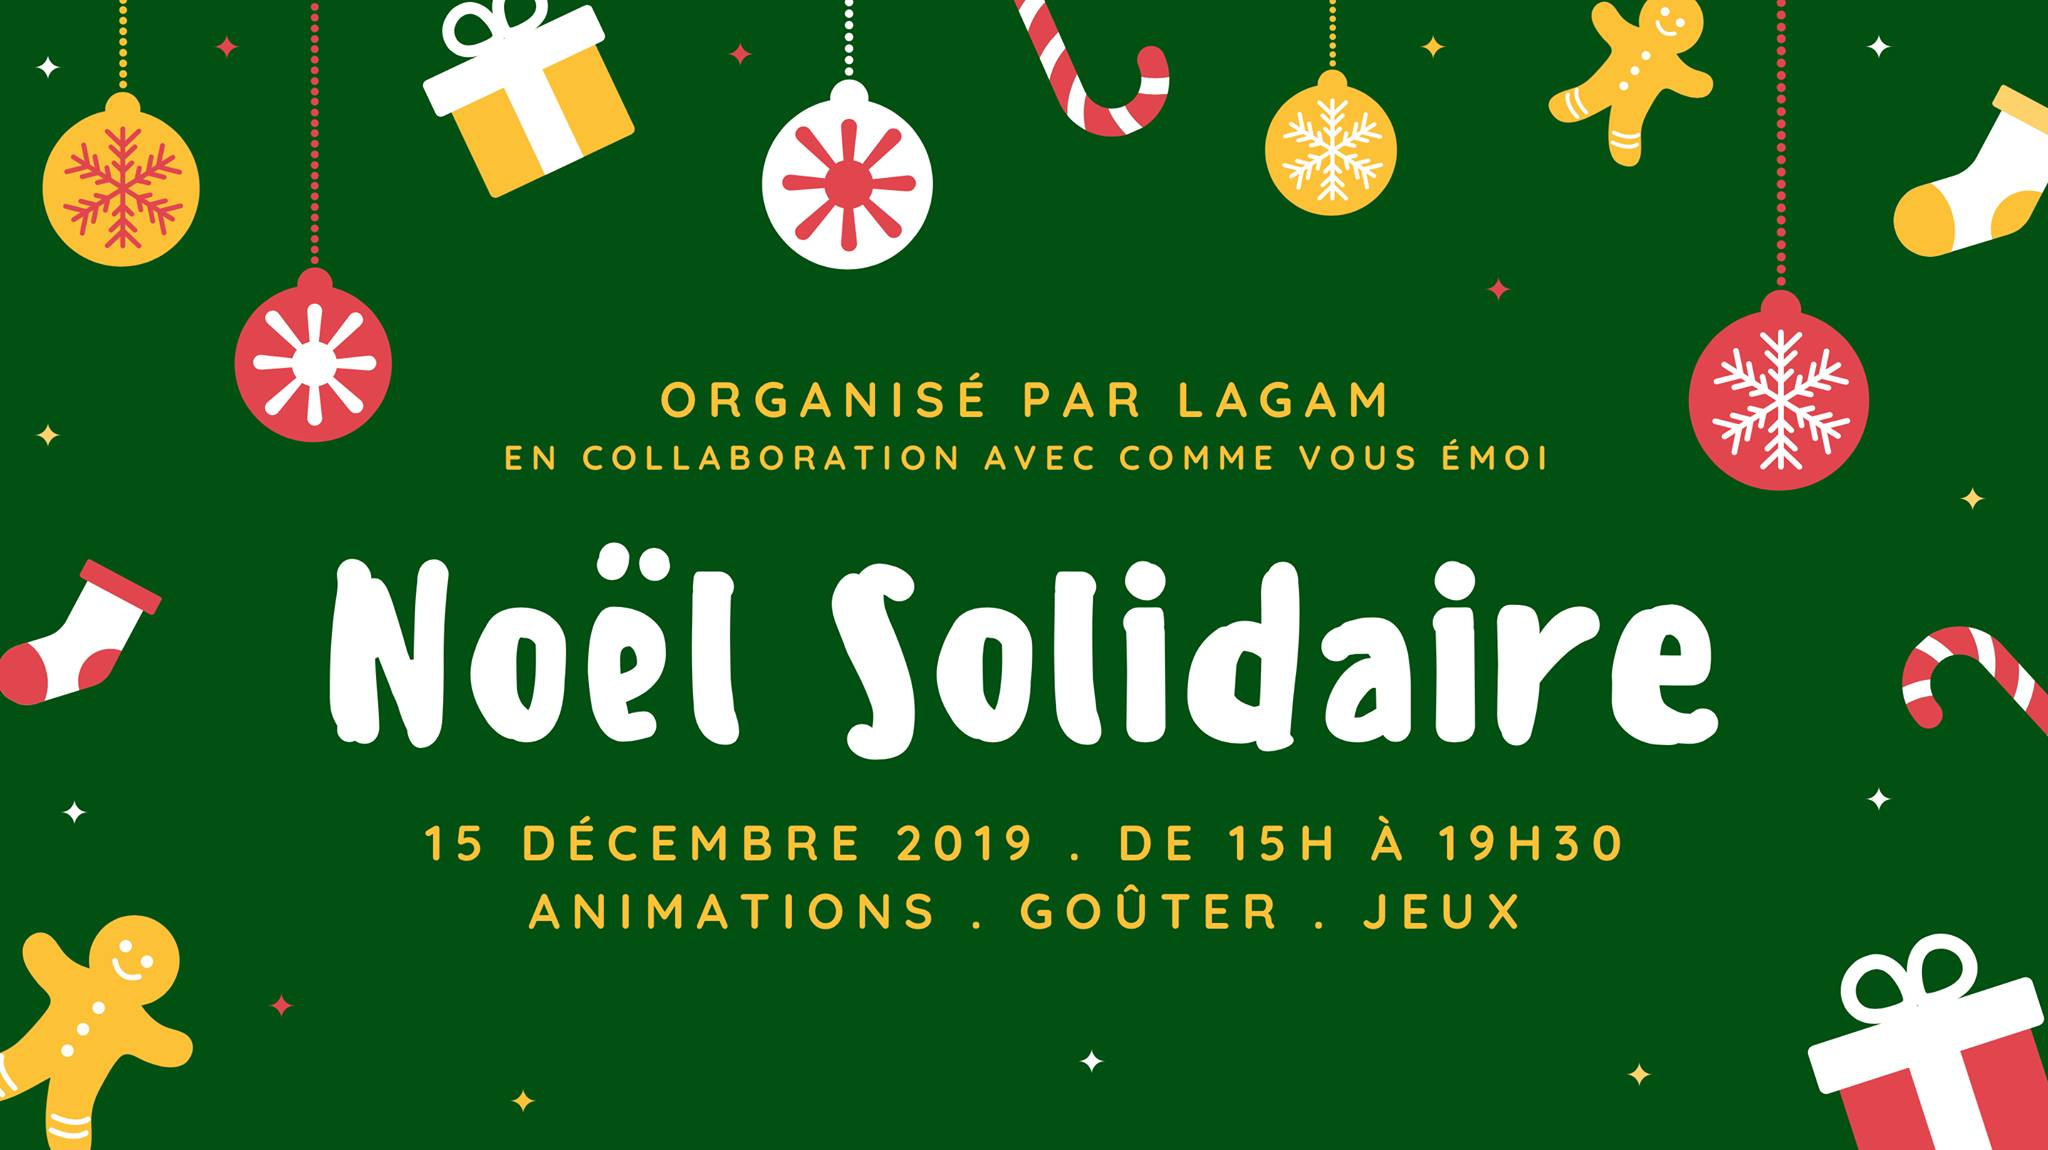 15/12 - Montreuil / 93